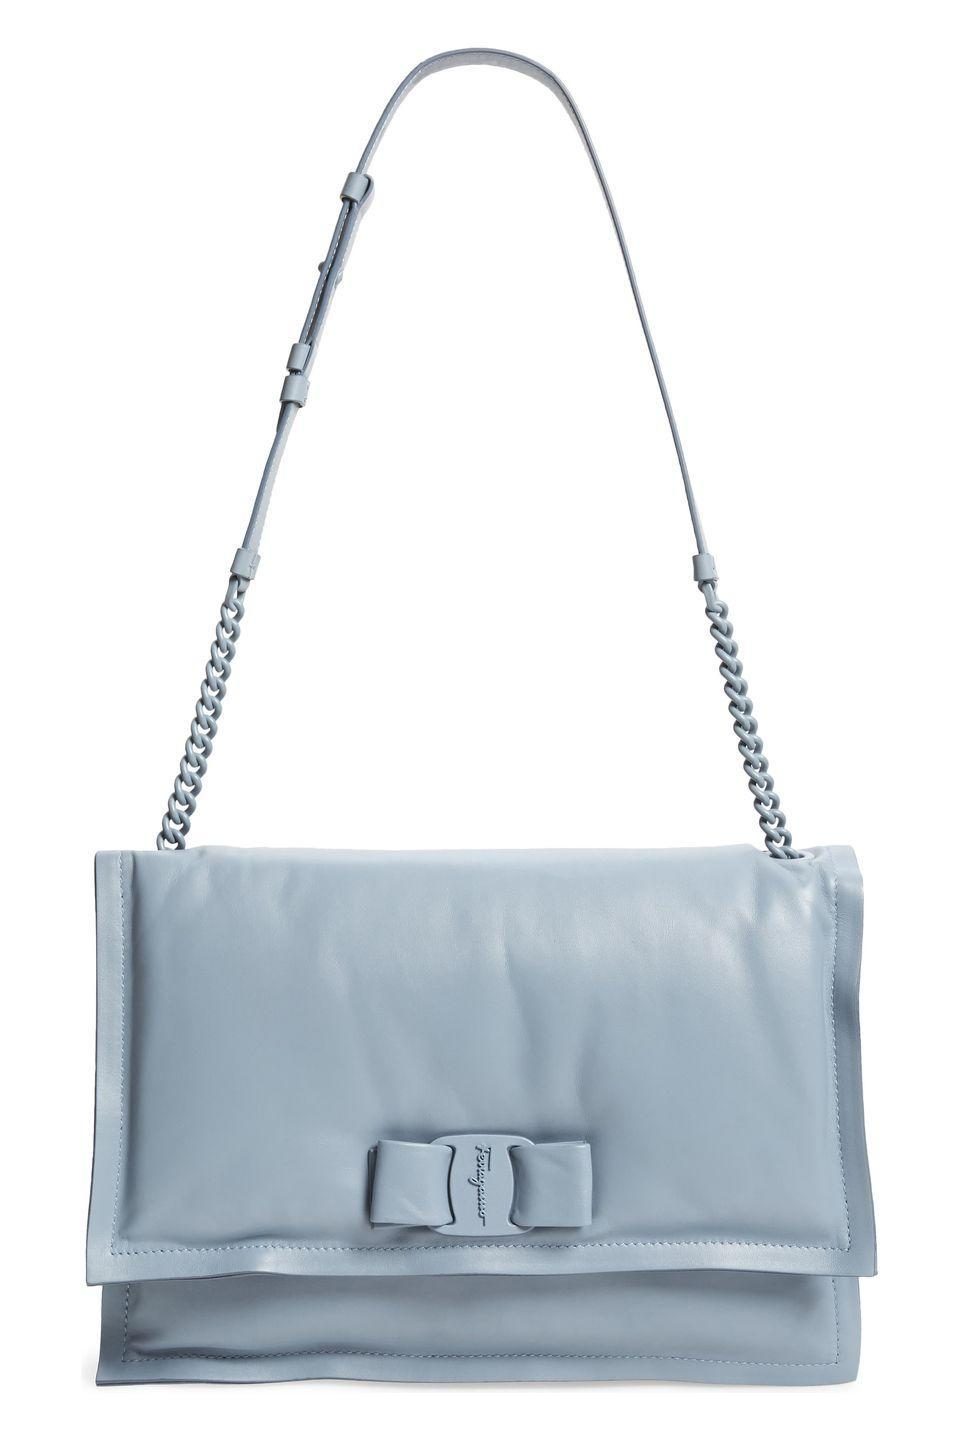 "<p>Salvatore Ferragamo's new Viva Bow bag could double as a pillow if you're in a sleepy pinch. The soft padded bag follows the puffed up purse trend we've all been loving, but offers a feminine touch in baby blue and a sweet bow detail. </p><p><em>Salvatore Ferragamo , $1,250; salvatoreferragamo.com</em></p><p><a class=""link rapid-noclick-resp"" href=""https://www.ferragamo.com/shop/us/en/women/handbags/hobos-shoulder-bags/viva-736924"" rel=""nofollow noopener"" target=""_blank"" data-ylk=""slk:SHOP NOW"">SHOP NOW</a></p>"